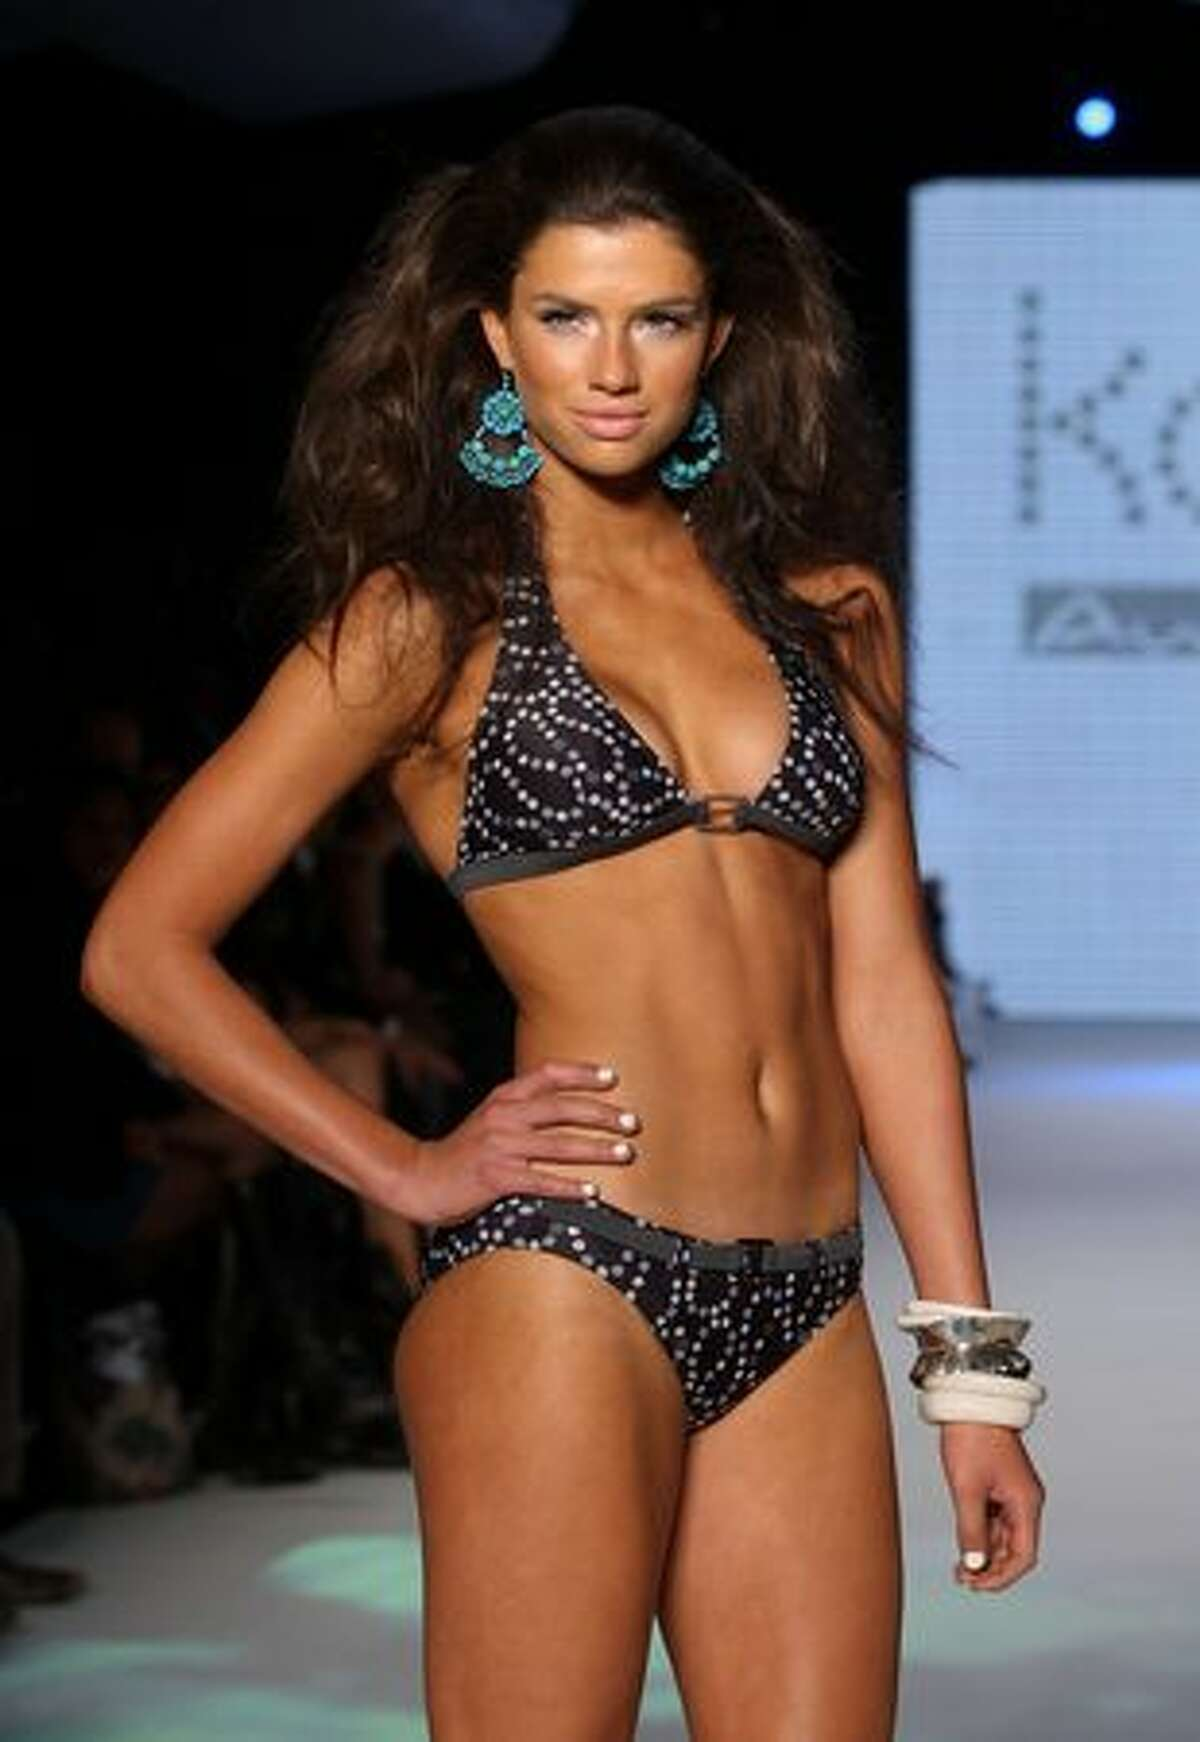 A model showcases designs on the catwalk during the Kooey collection show on the fourth day of Rosemount Australian Fashion Week Spring/Summer 2010/11 in Sydney, Australia.